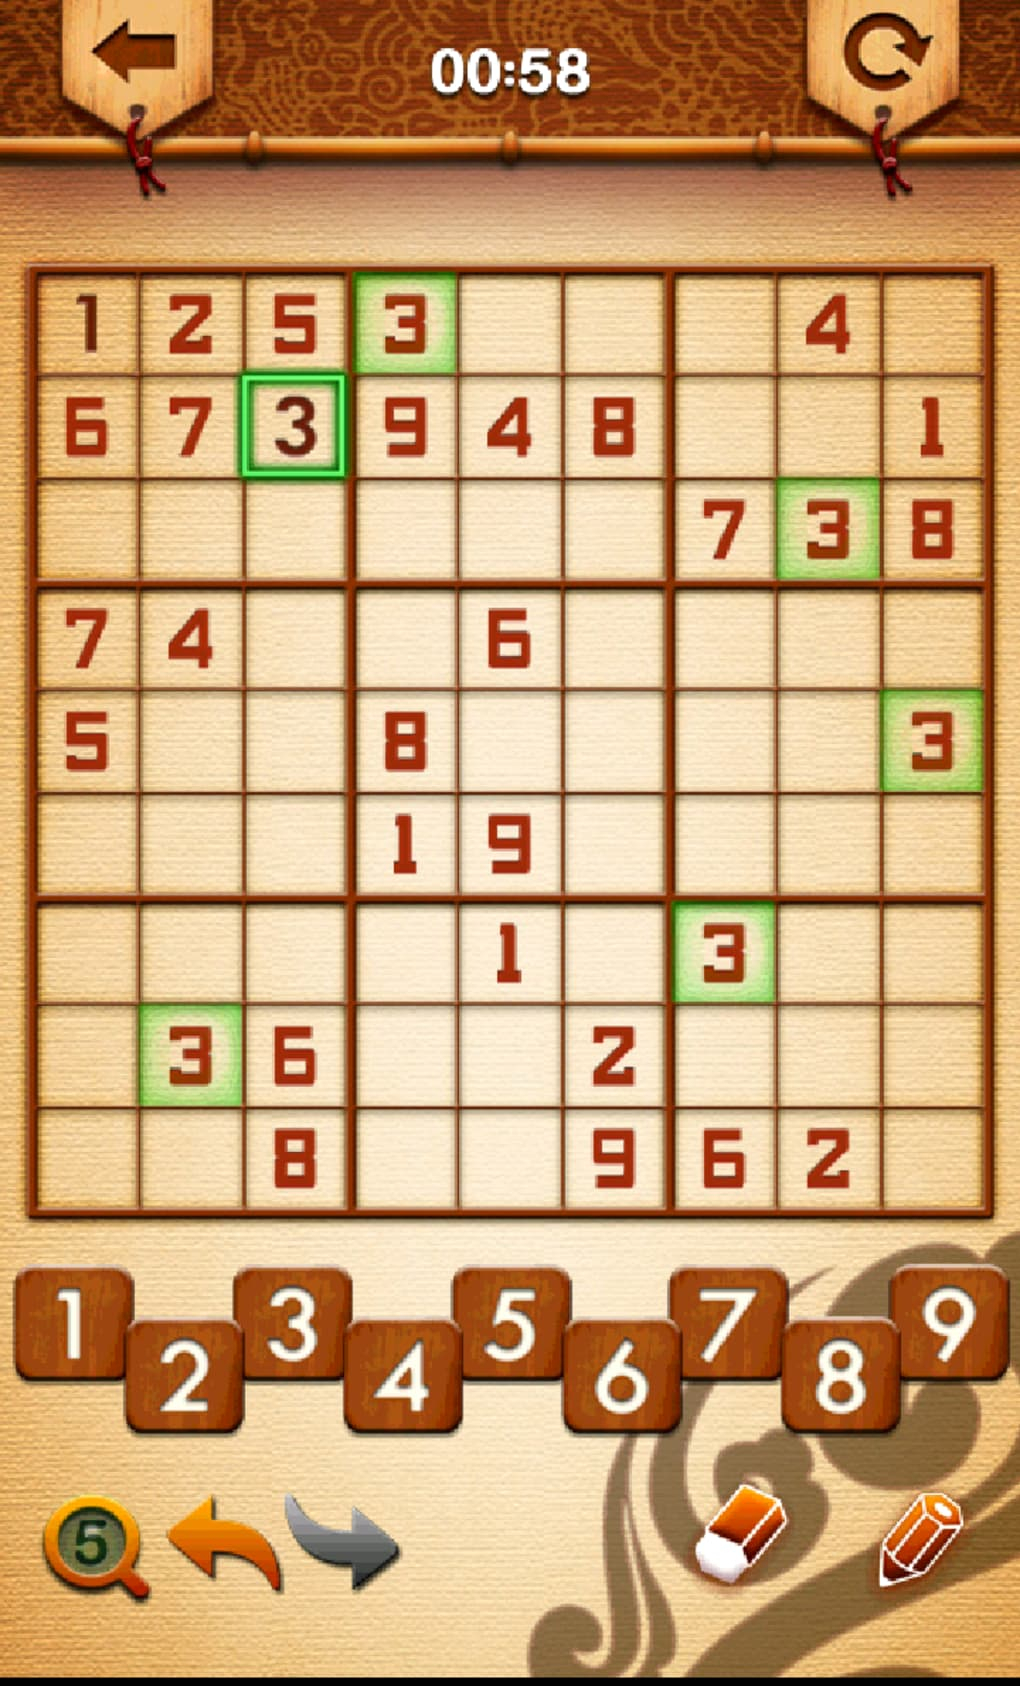 Sudoku Master Apk For Android - Download à Telecharger Sudoku